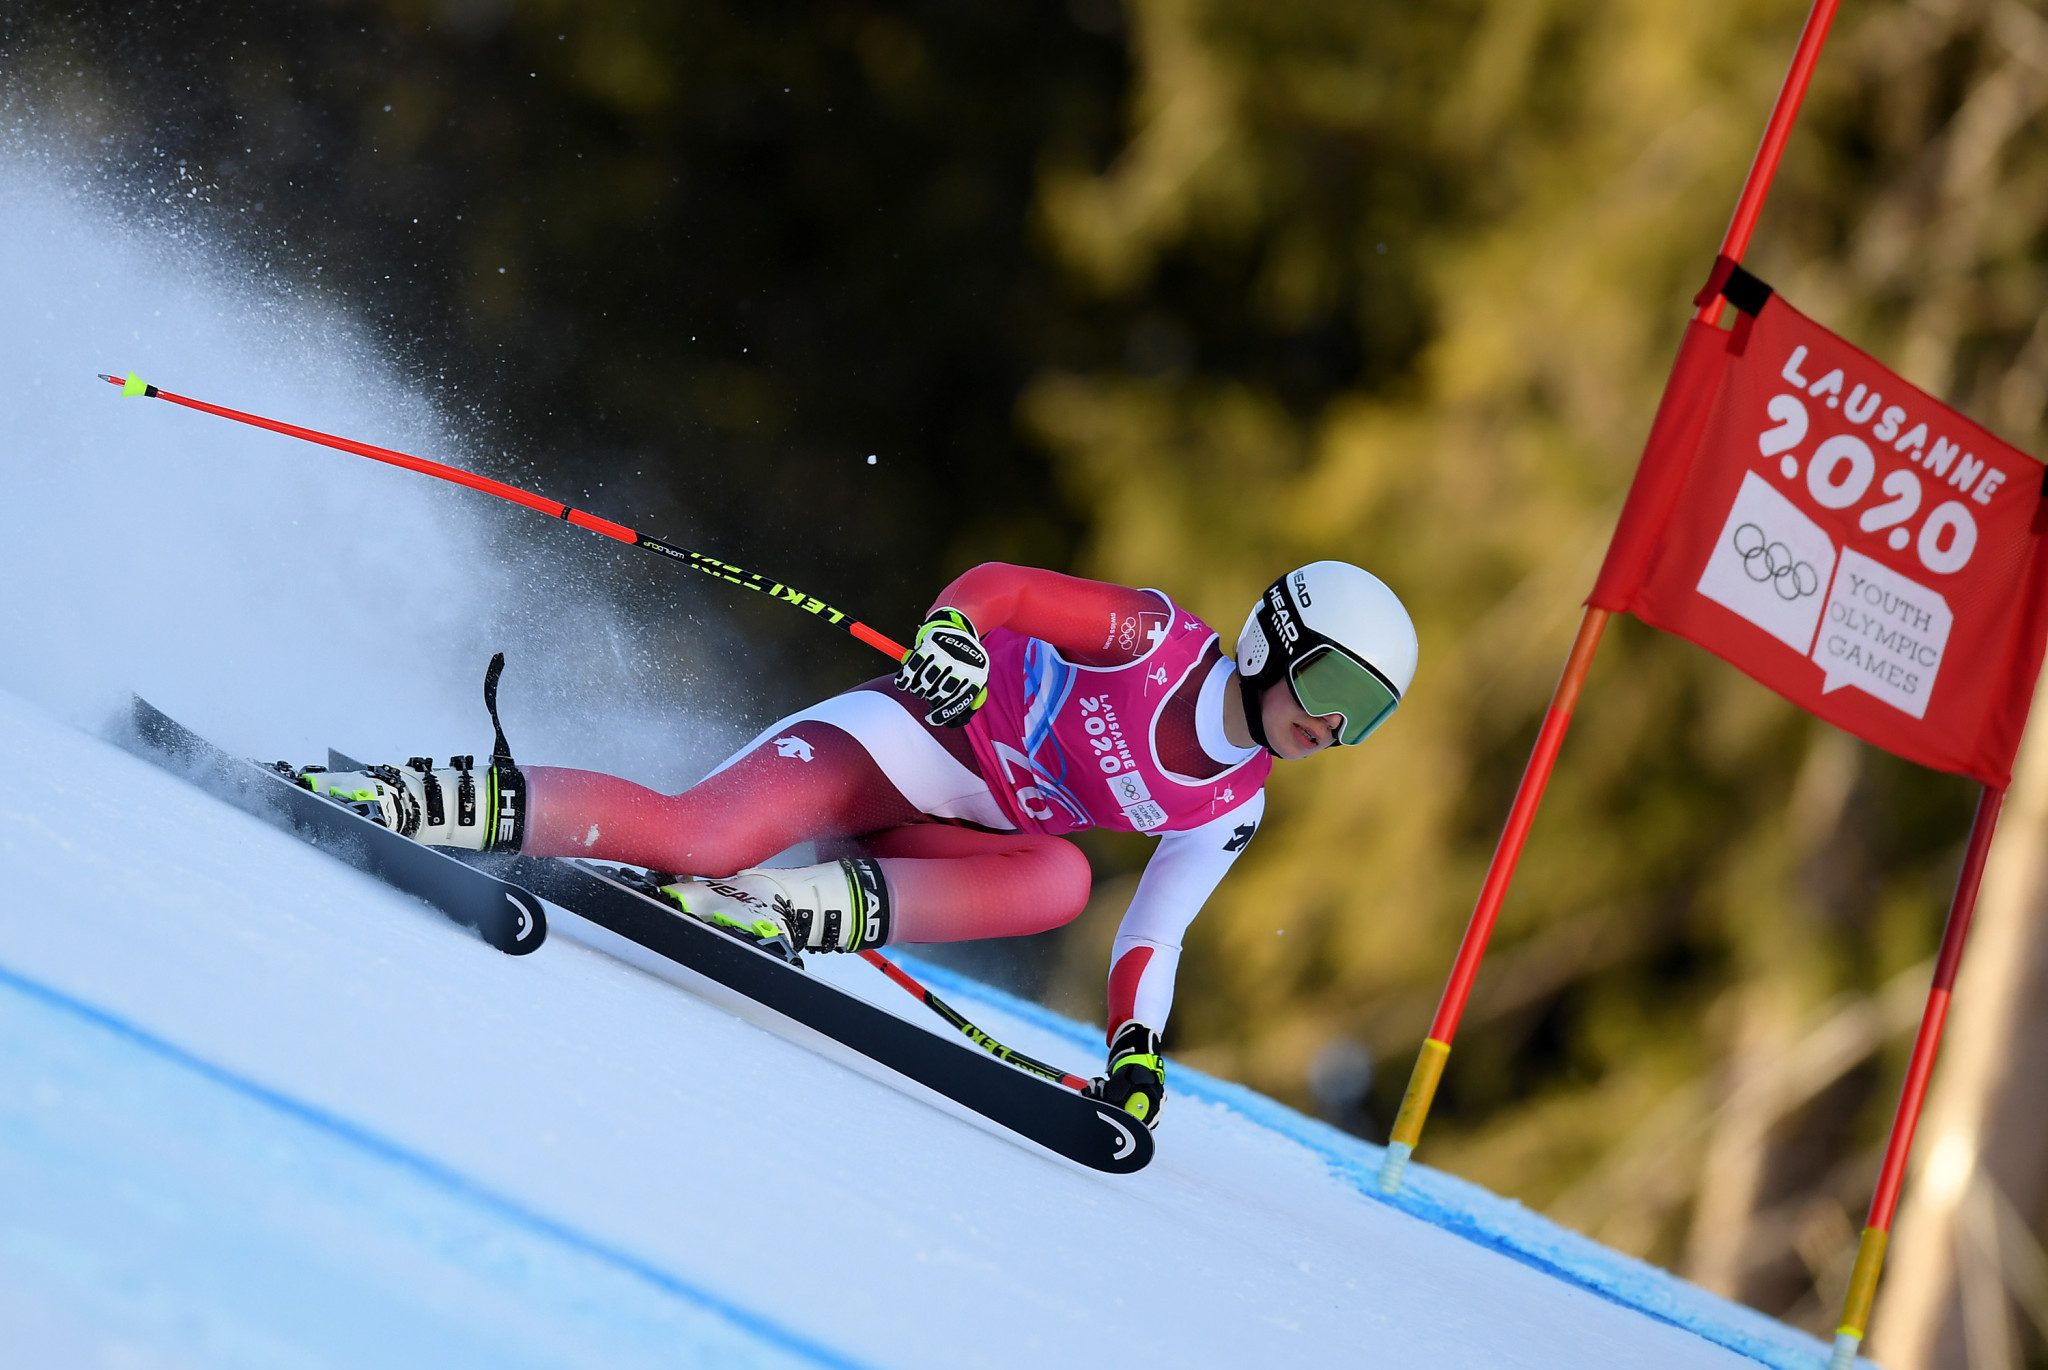 Amelie Klopfenstein of Switzerland won the women's giant slalom gold medal ©Getty Images